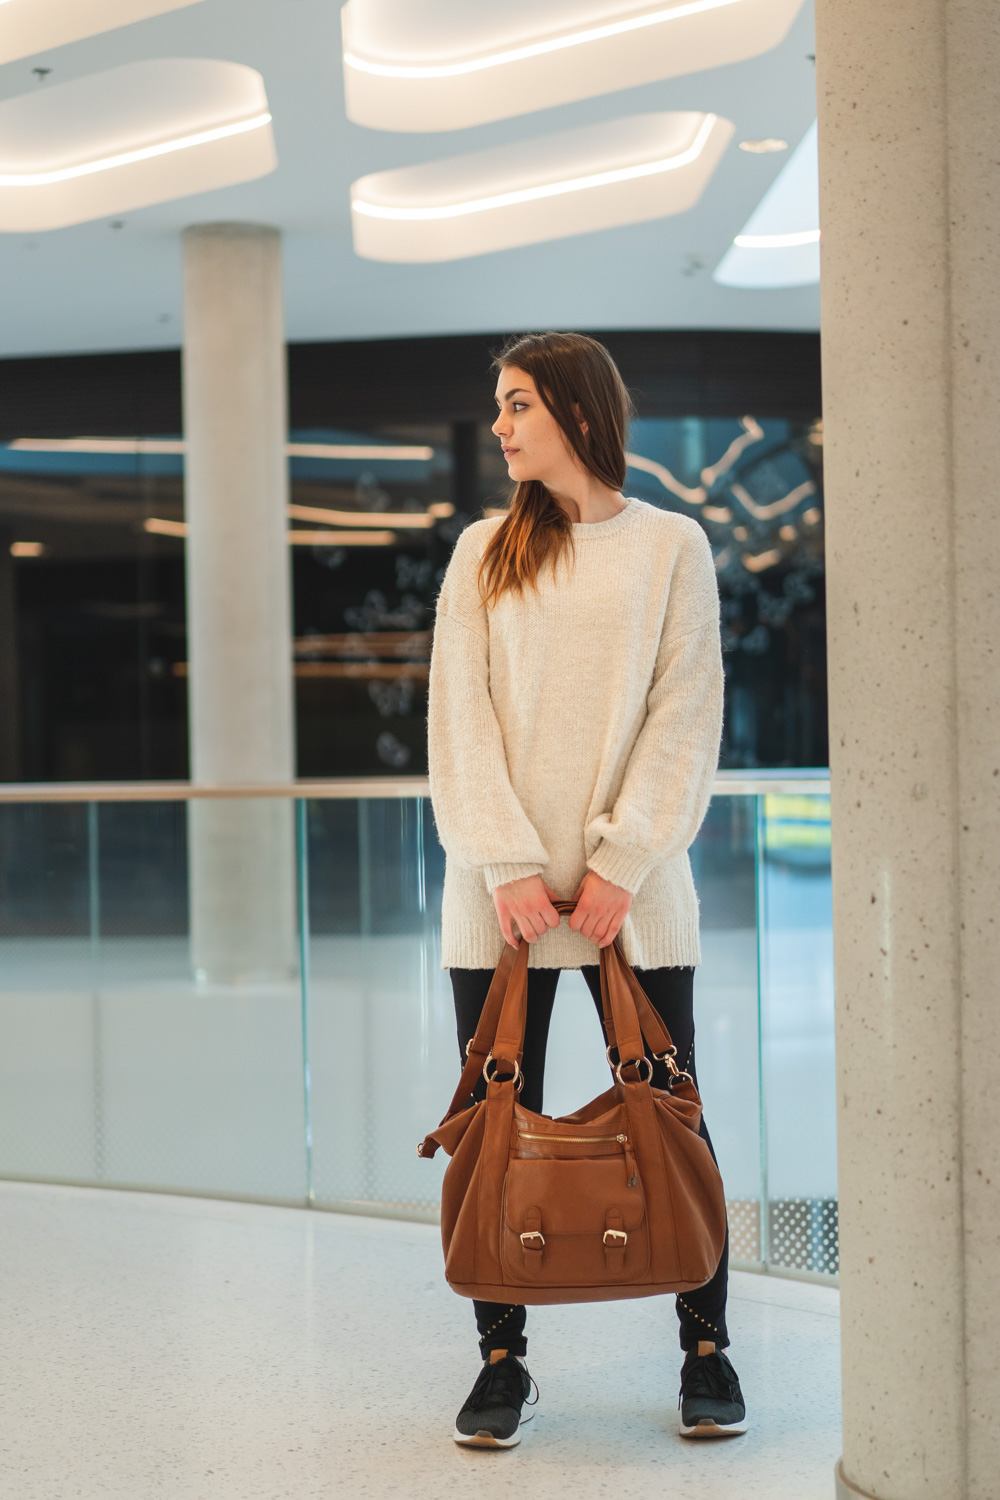 Cozy travel outfit with leggings and pullover